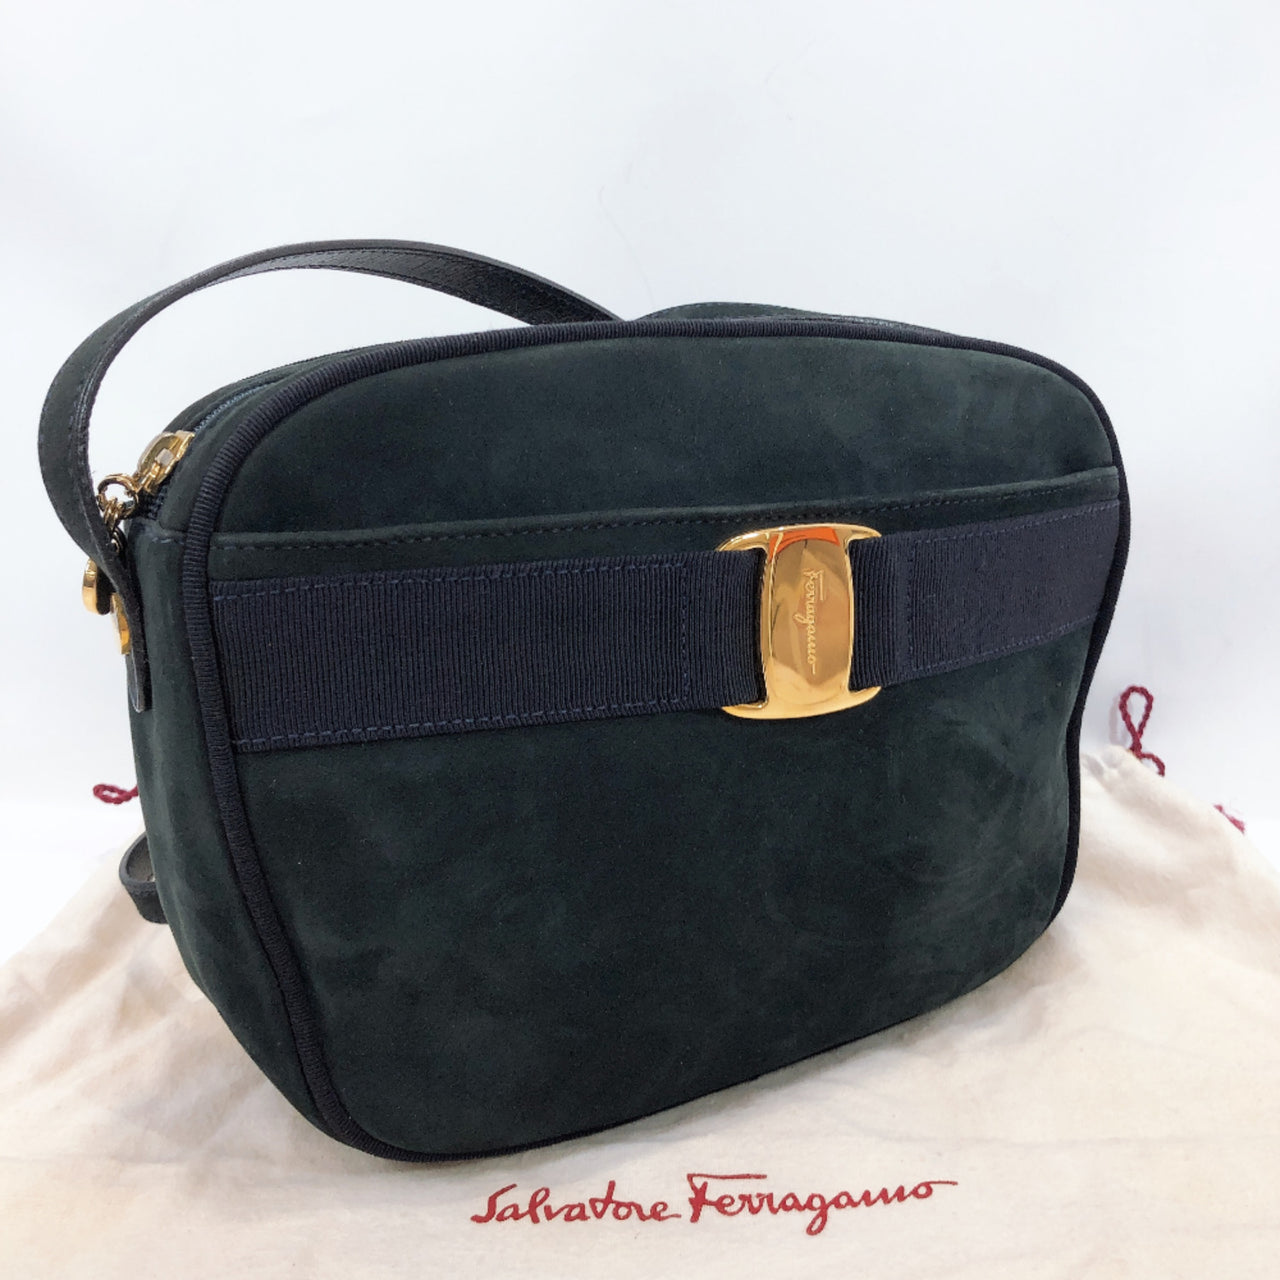 Salvatore Ferragamo Shoulder Bag BA21 4183 Vara ribbon Suede Navy Women Used